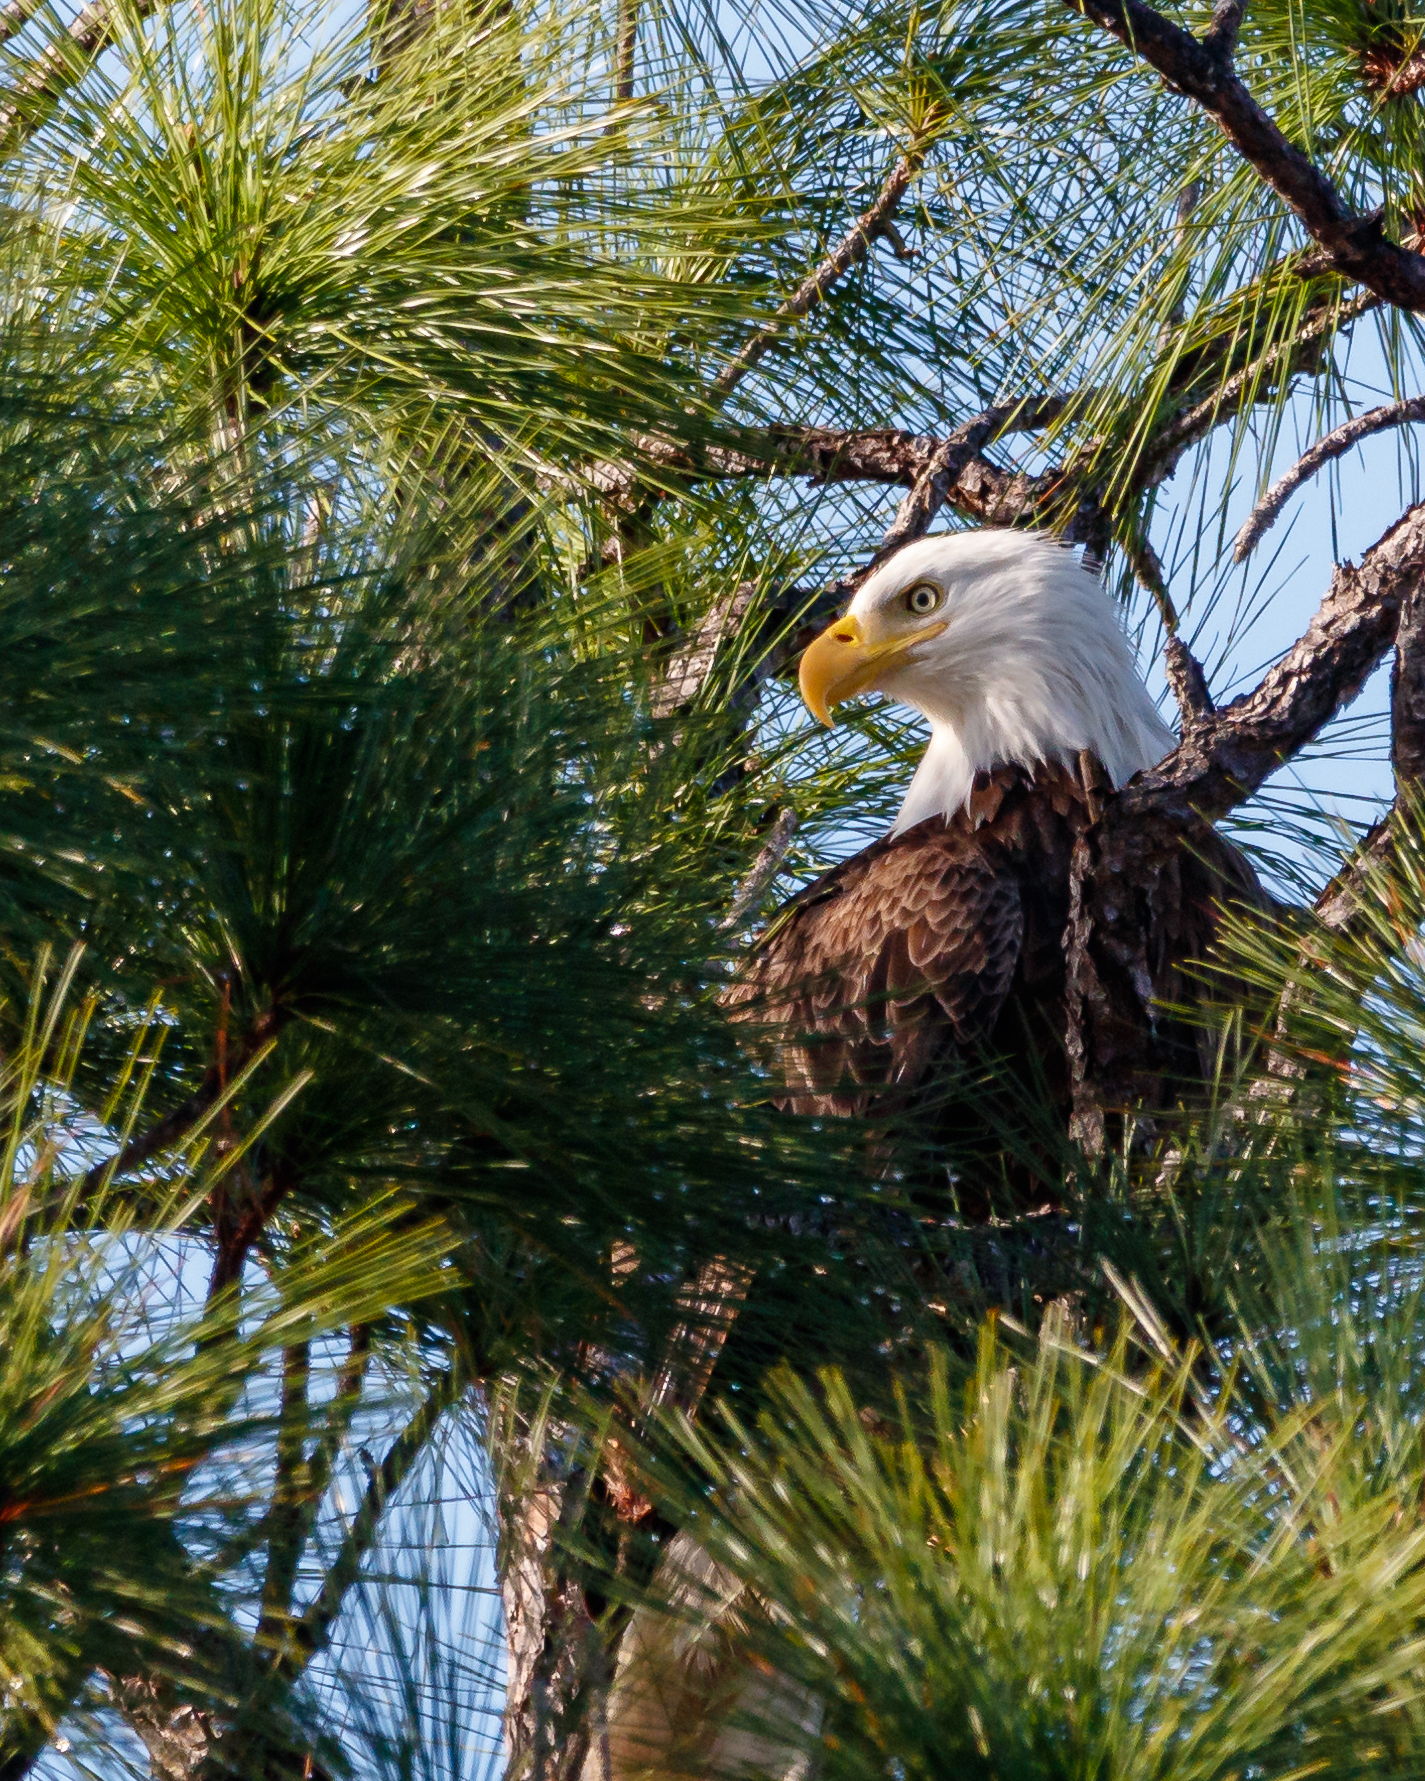 A bald eagle perches in a pine tree at Estero Bay Preserve State Park. Photo by Nate Arnold.